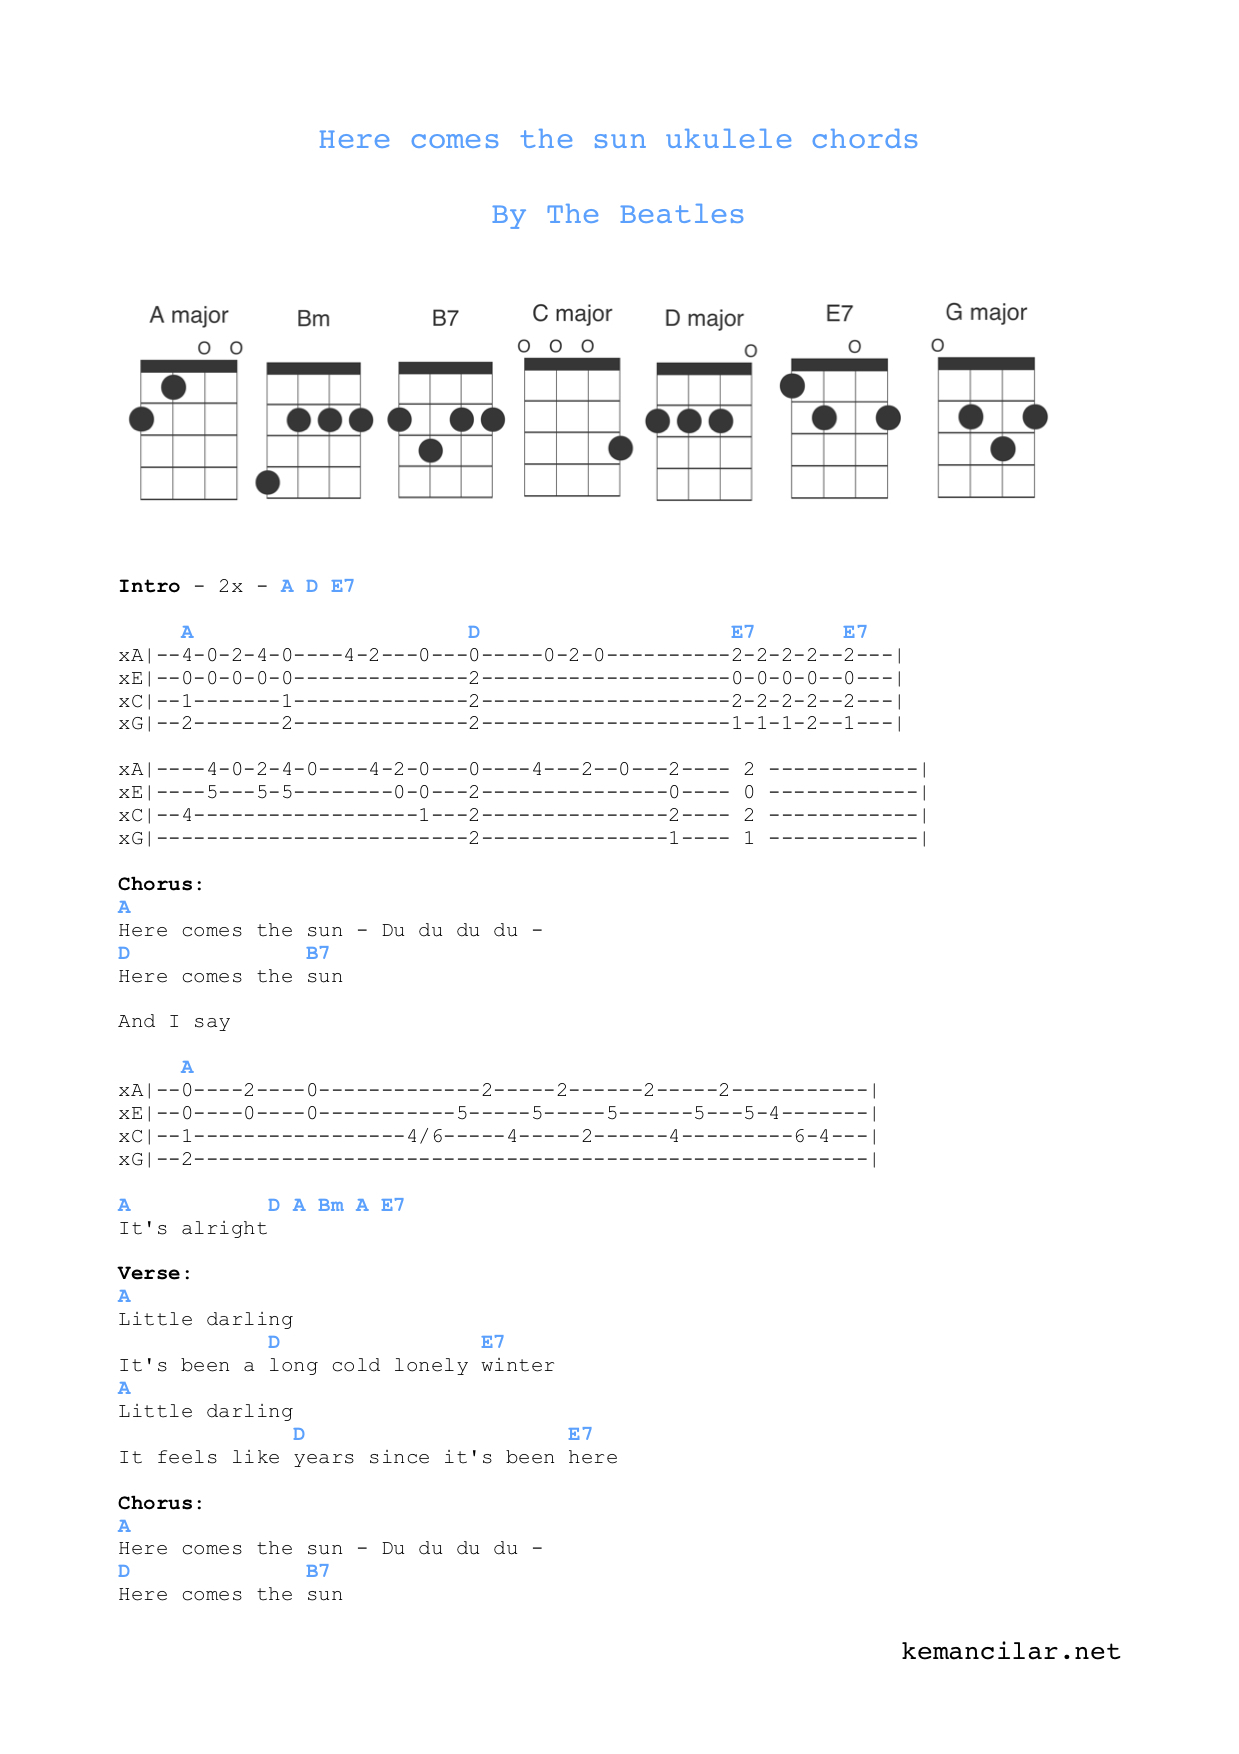 Here Comes The Sun Chords Here Comes The Sun Ukulele Chords Free Sheet Music